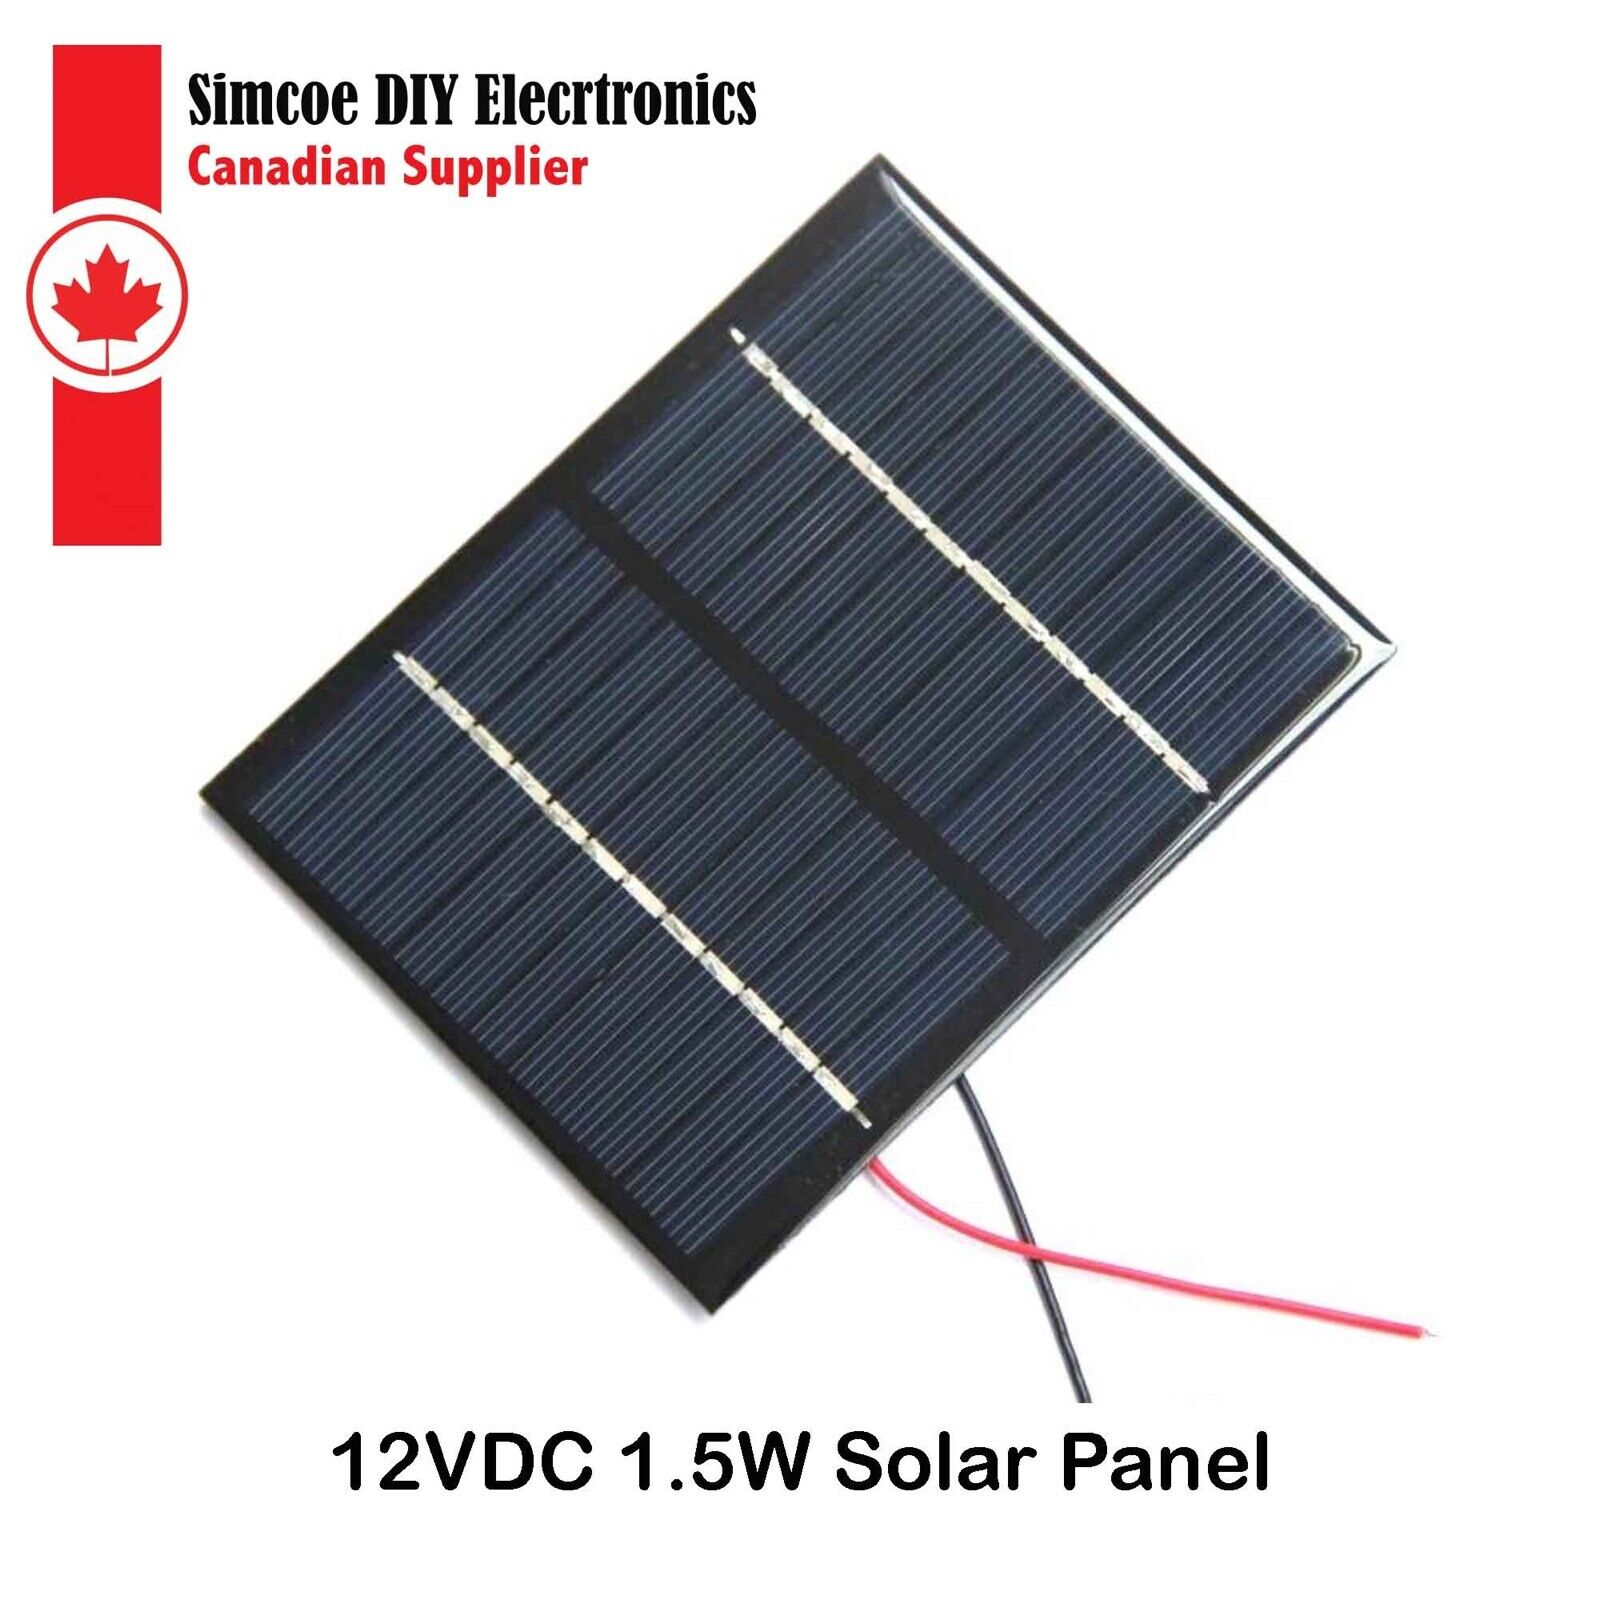 1.5W 12V Polycrystalline Silicon Solar Cell / Panel for DIY Power Charger #3249